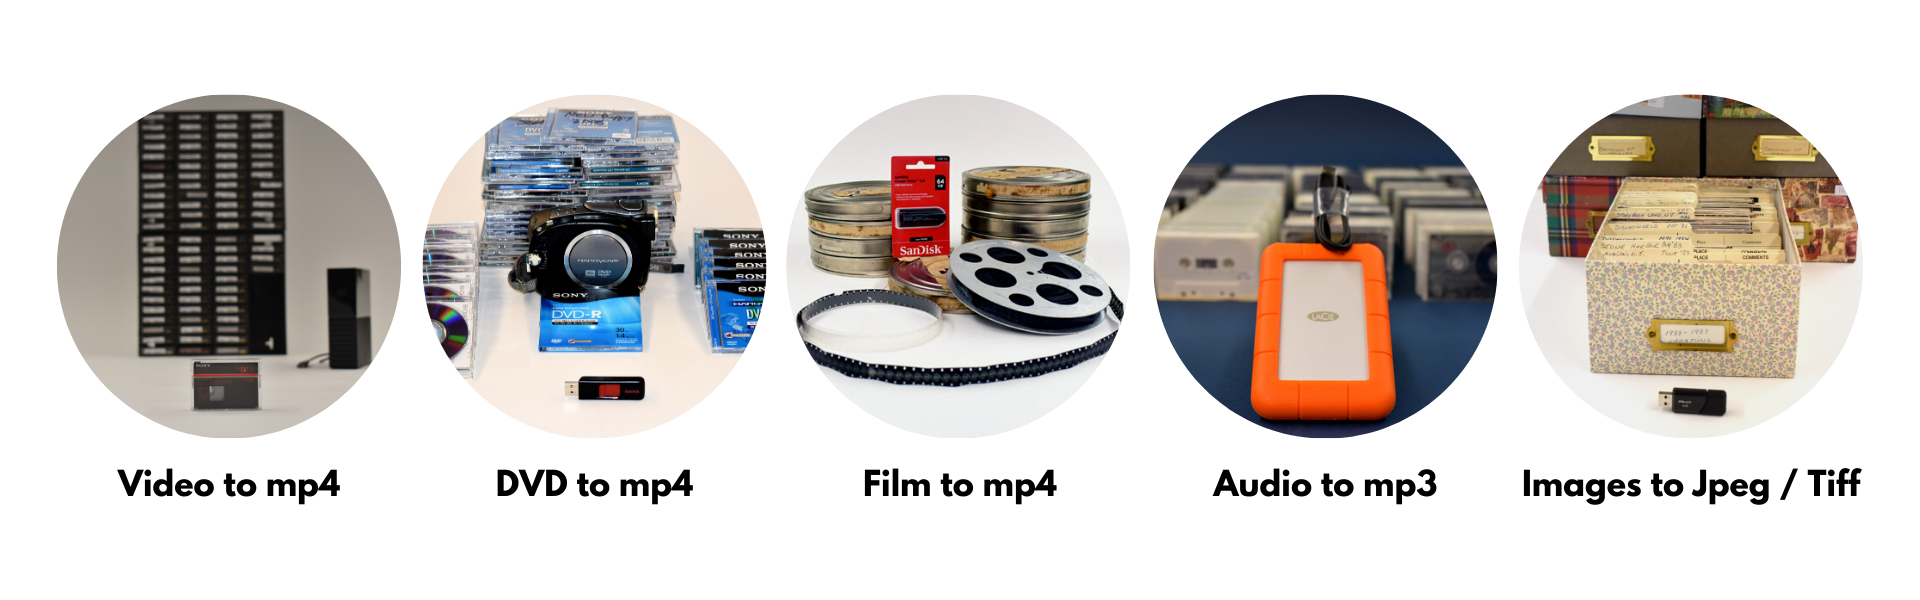 Audio Video Film Conversion to Digital Services